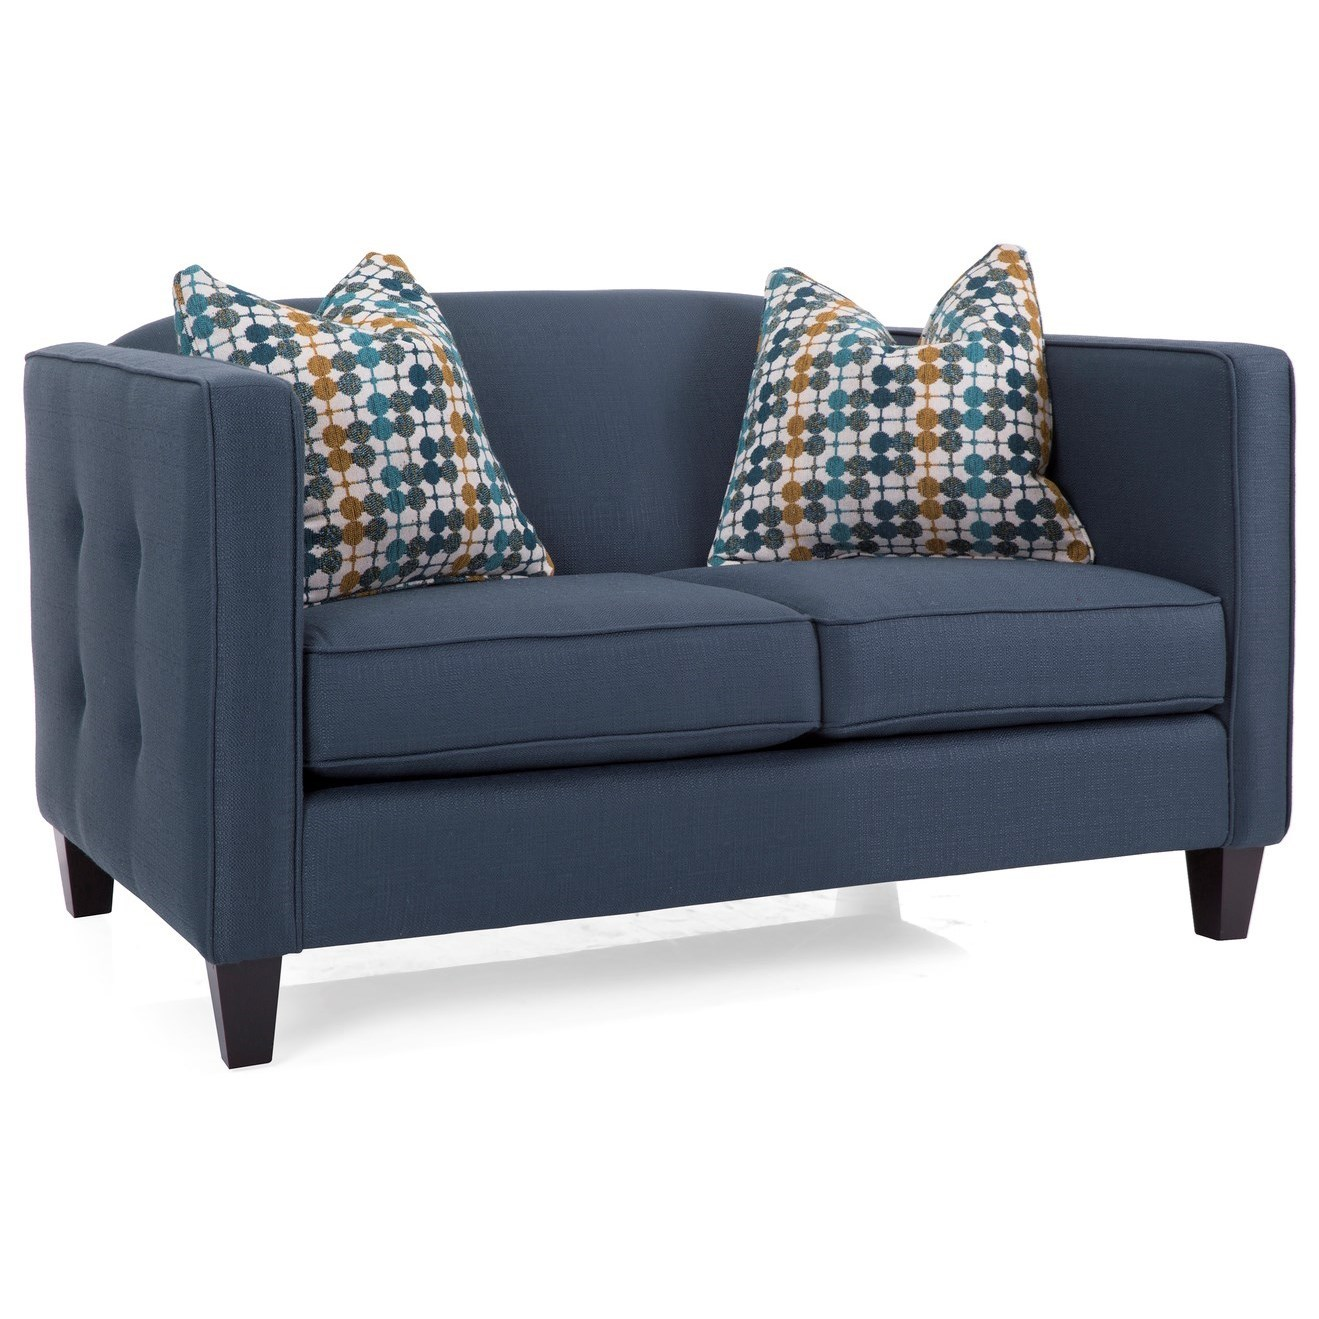 Fine Decor Rest 2700 Transitional Loveseat With Button Tufting On Andrewgaddart Wooden Chair Designs For Living Room Andrewgaddartcom